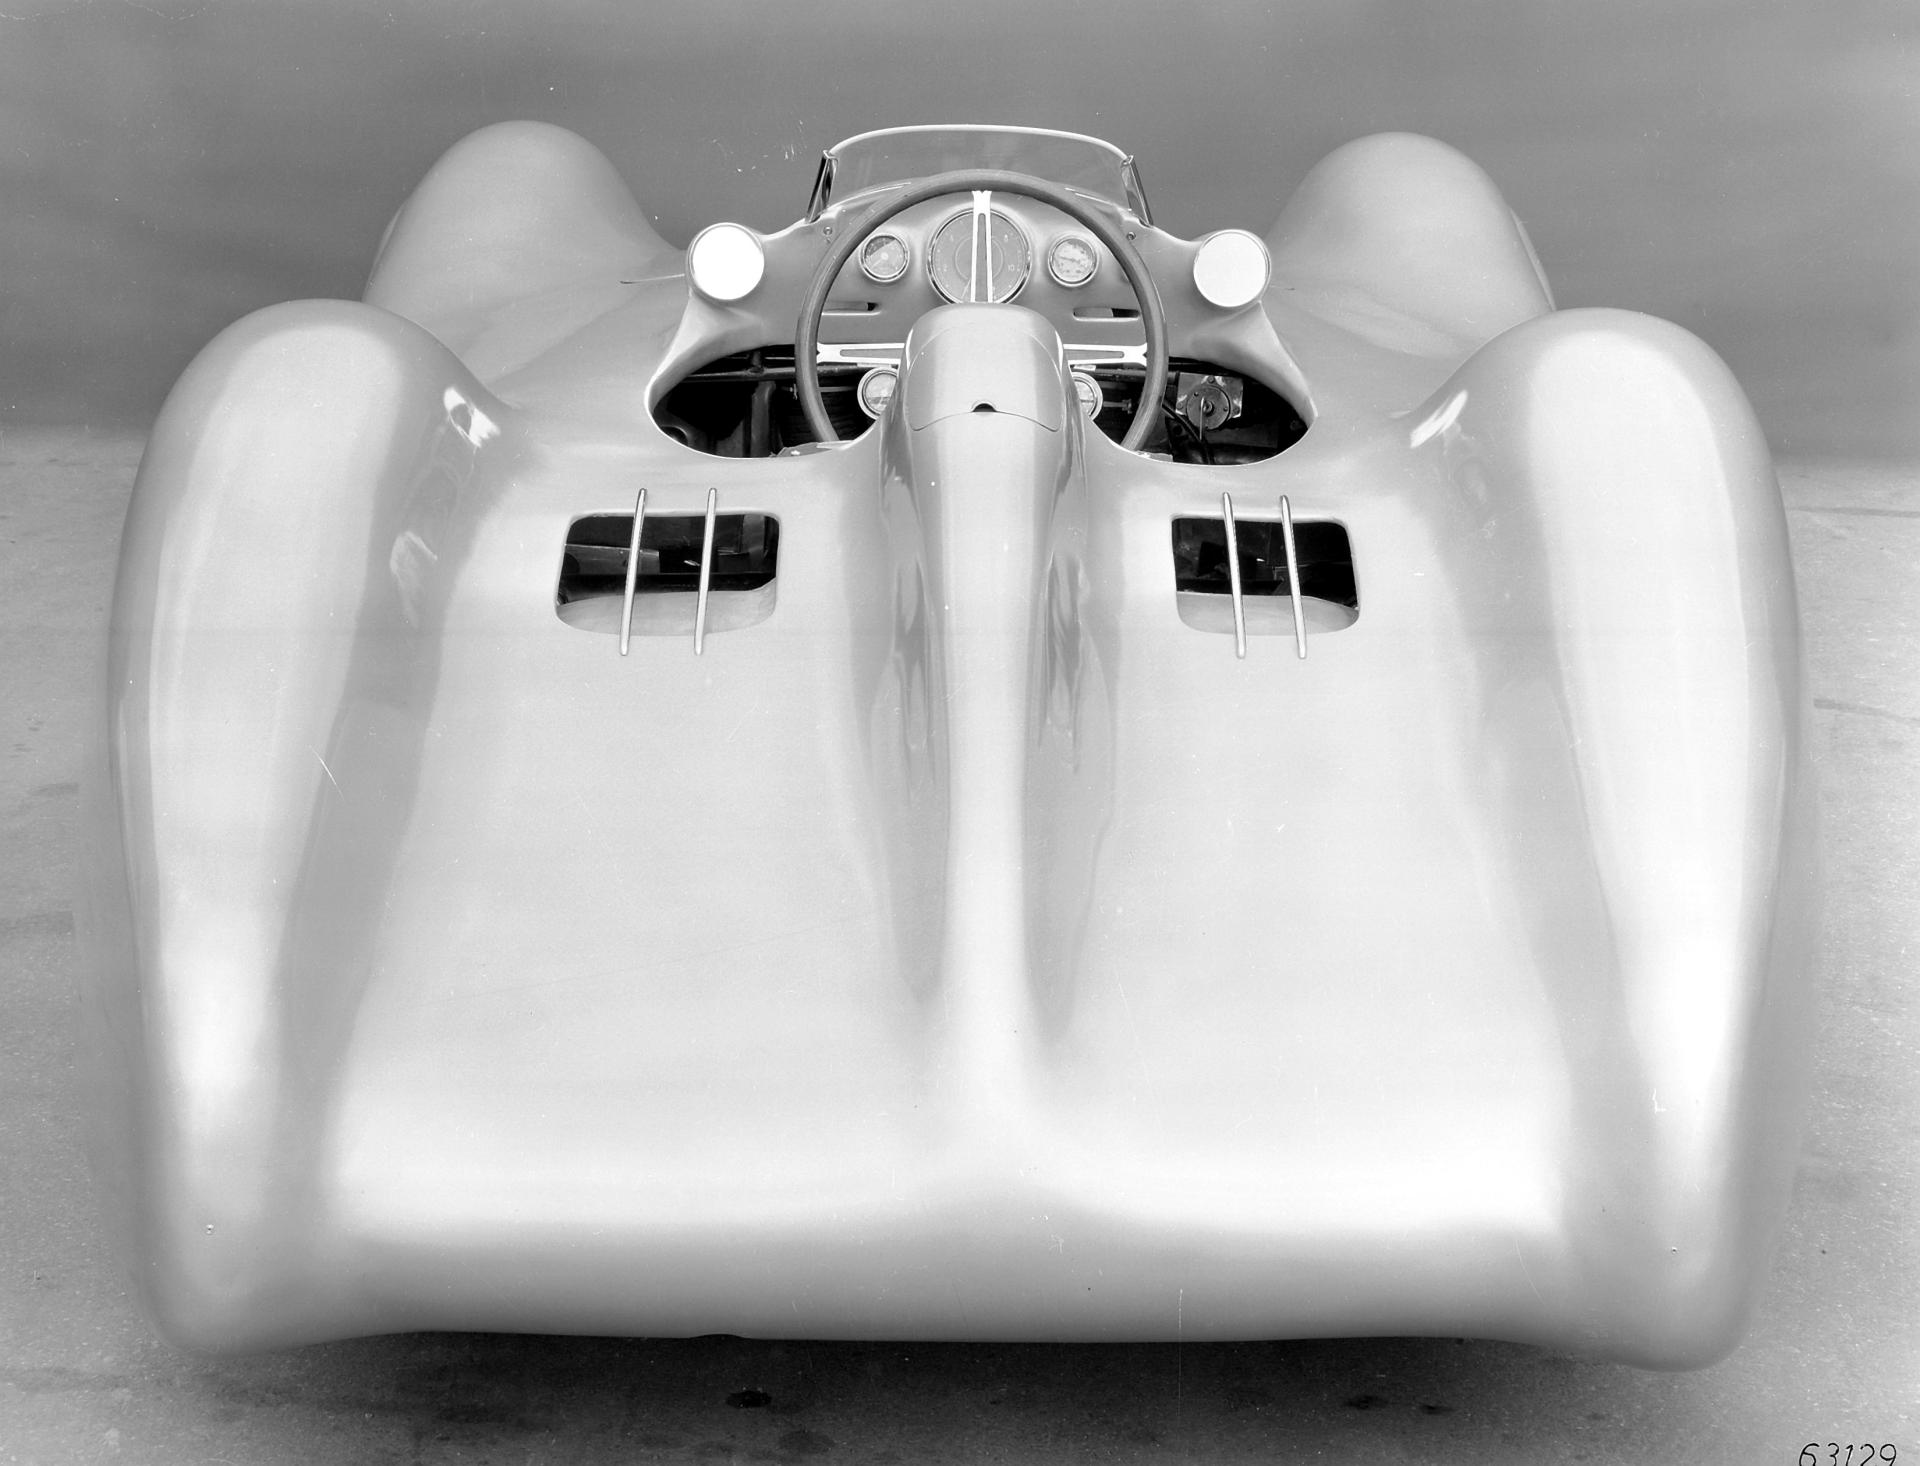 1954 Mercedes-Benz W196 R Streamliner